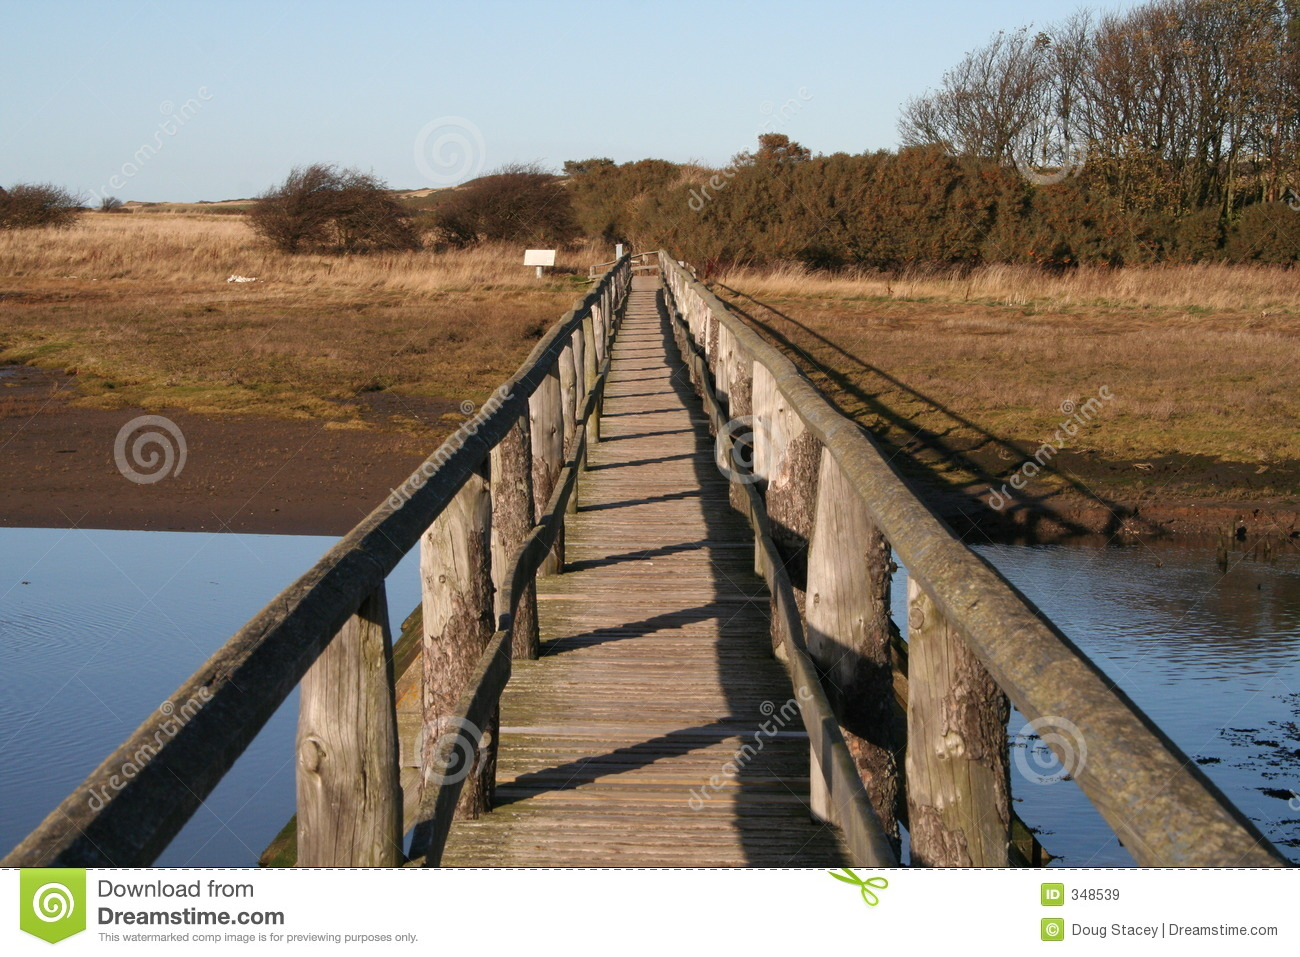 Bridge Over Water Royalty Free Stock Images   Image  348539